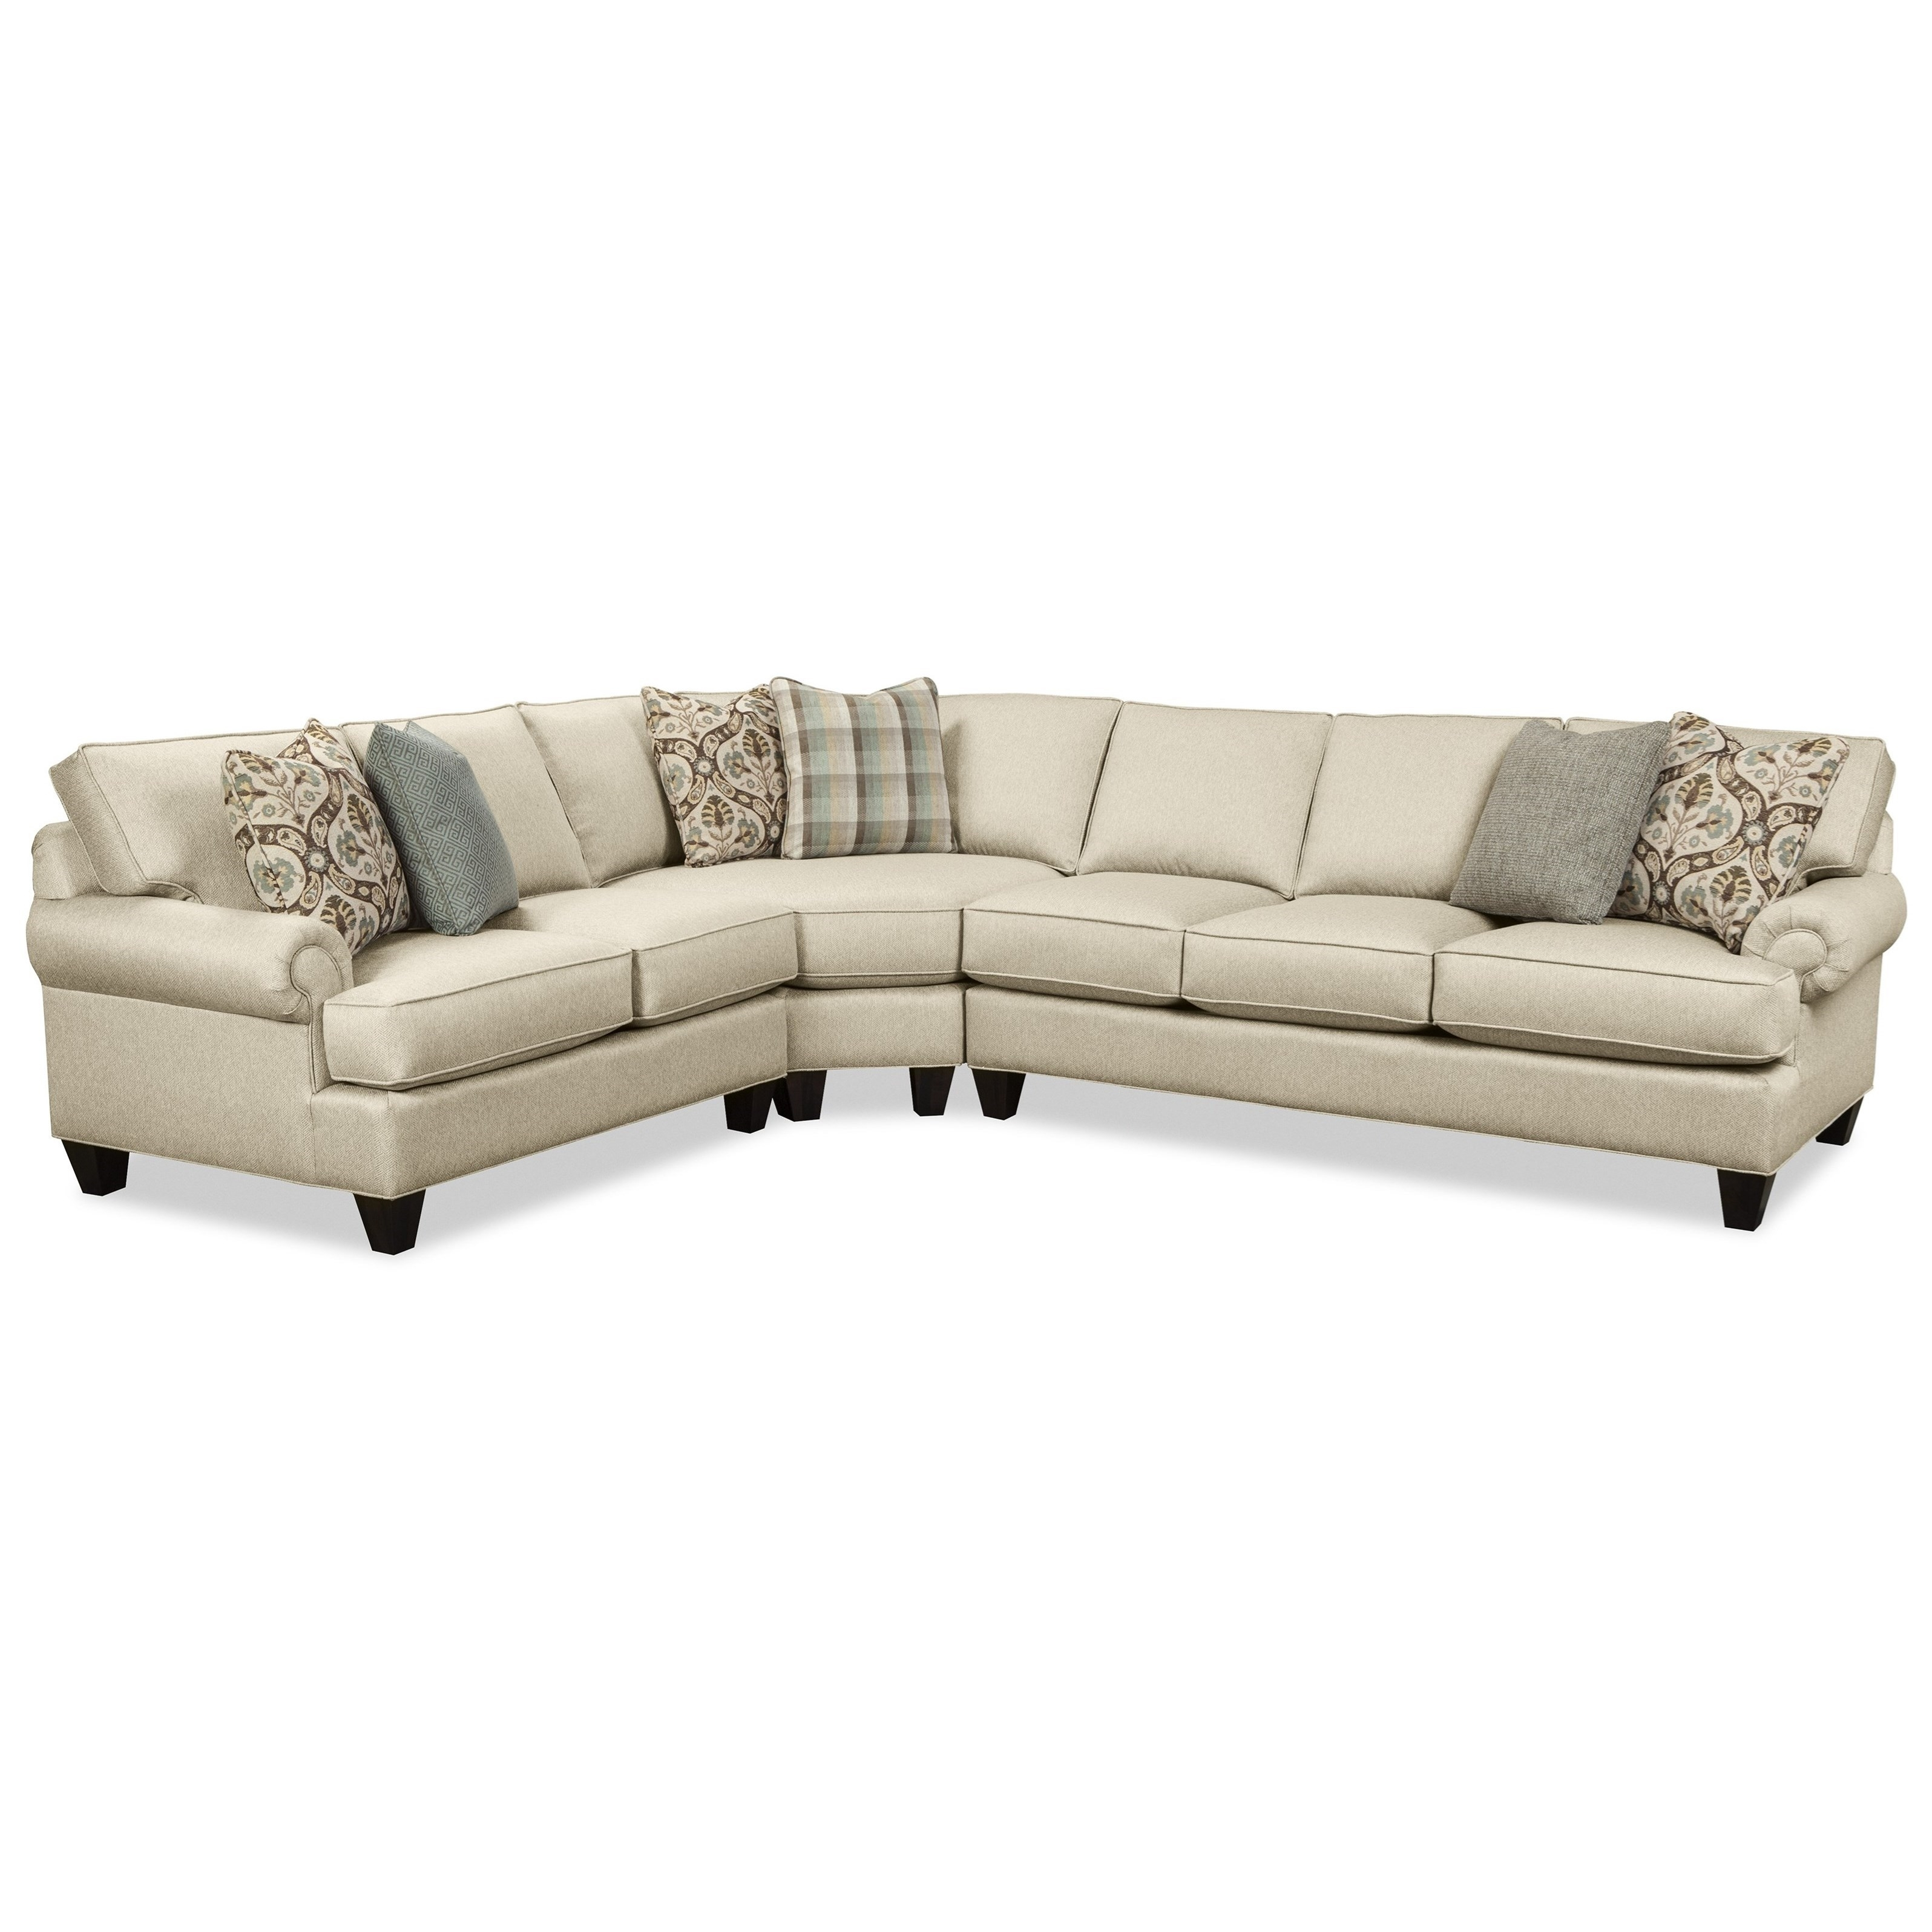 Craftmaster C9 Custom Collection Customizable Three Piece Sectional in Josephine 2 Piece Sectionals With Laf Sofa (Image 12 of 30)